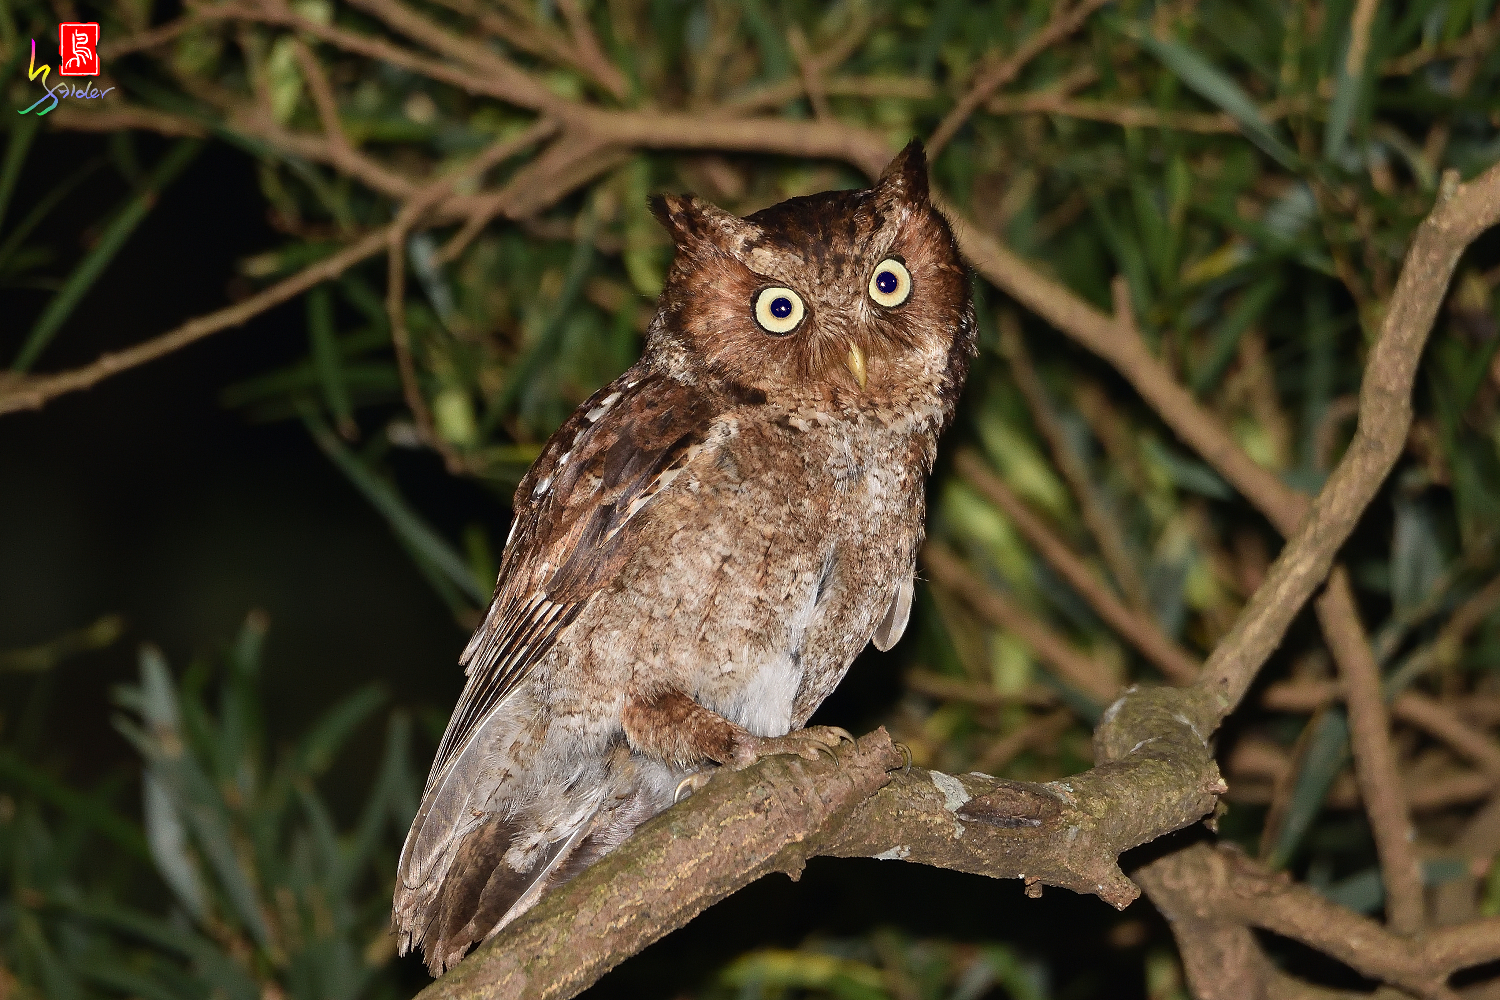 Moutain_Scops_Owl_1468_Redeye